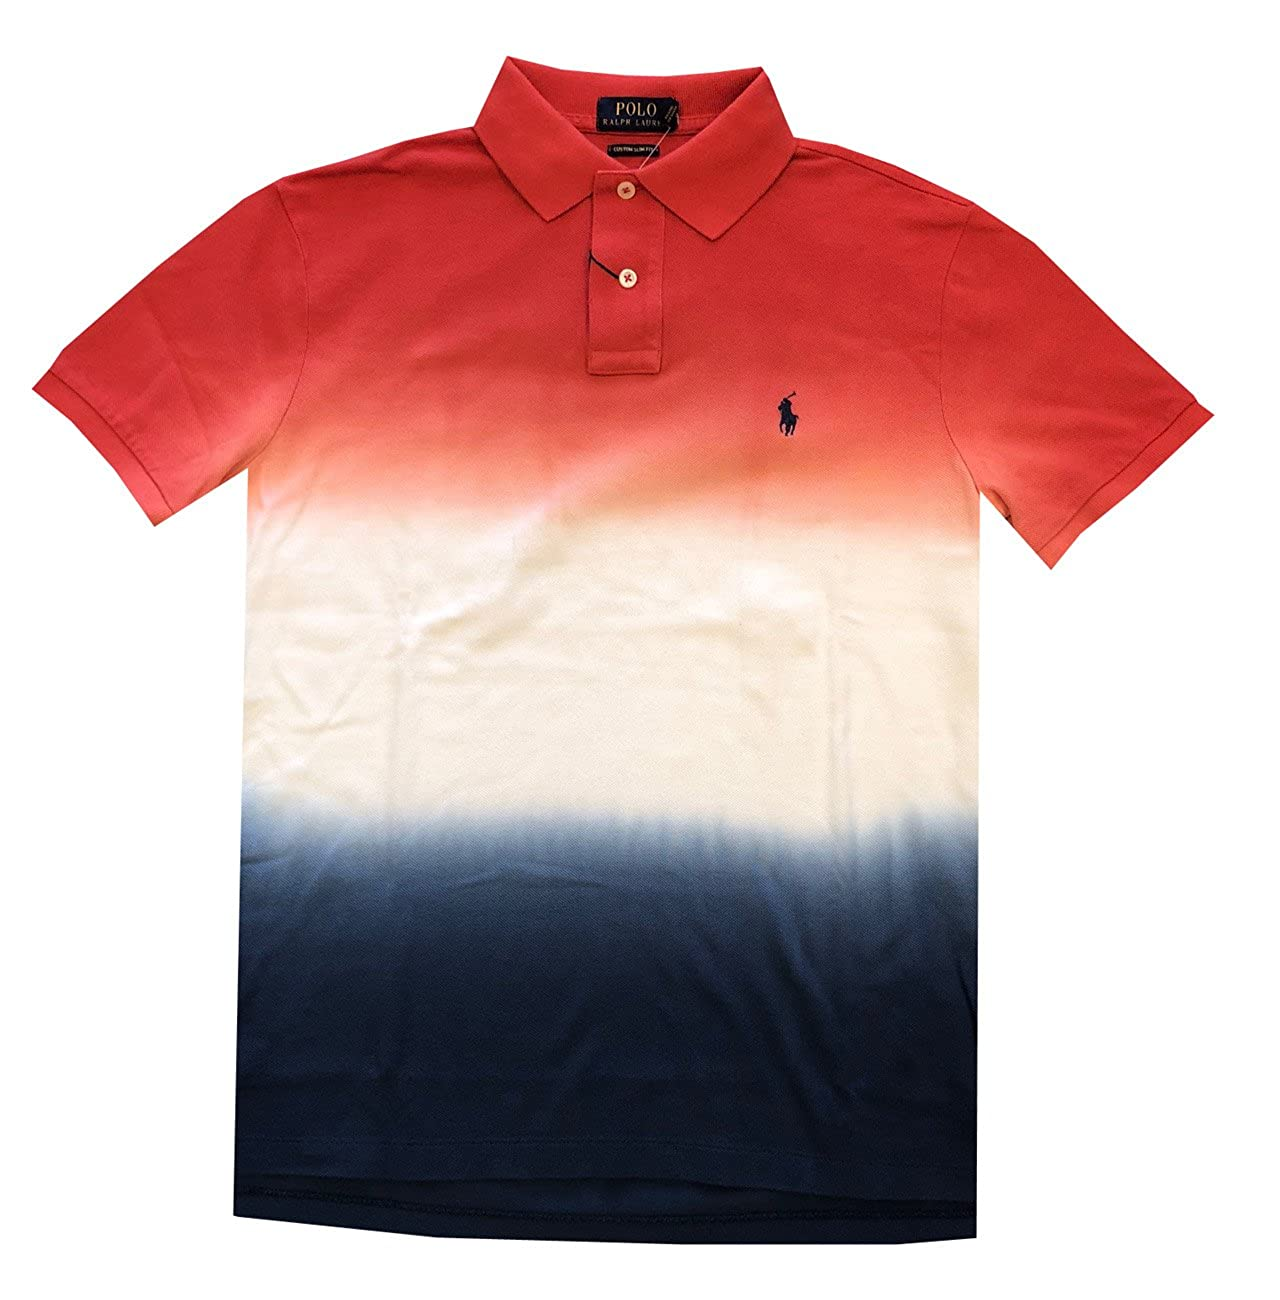 788fe09ec Ribbed Polo collar. Two-button placket. Short sleeves with ribbed armbands. Tennis  tail. Signature embroidered pony at the left chest. 100% cotton.